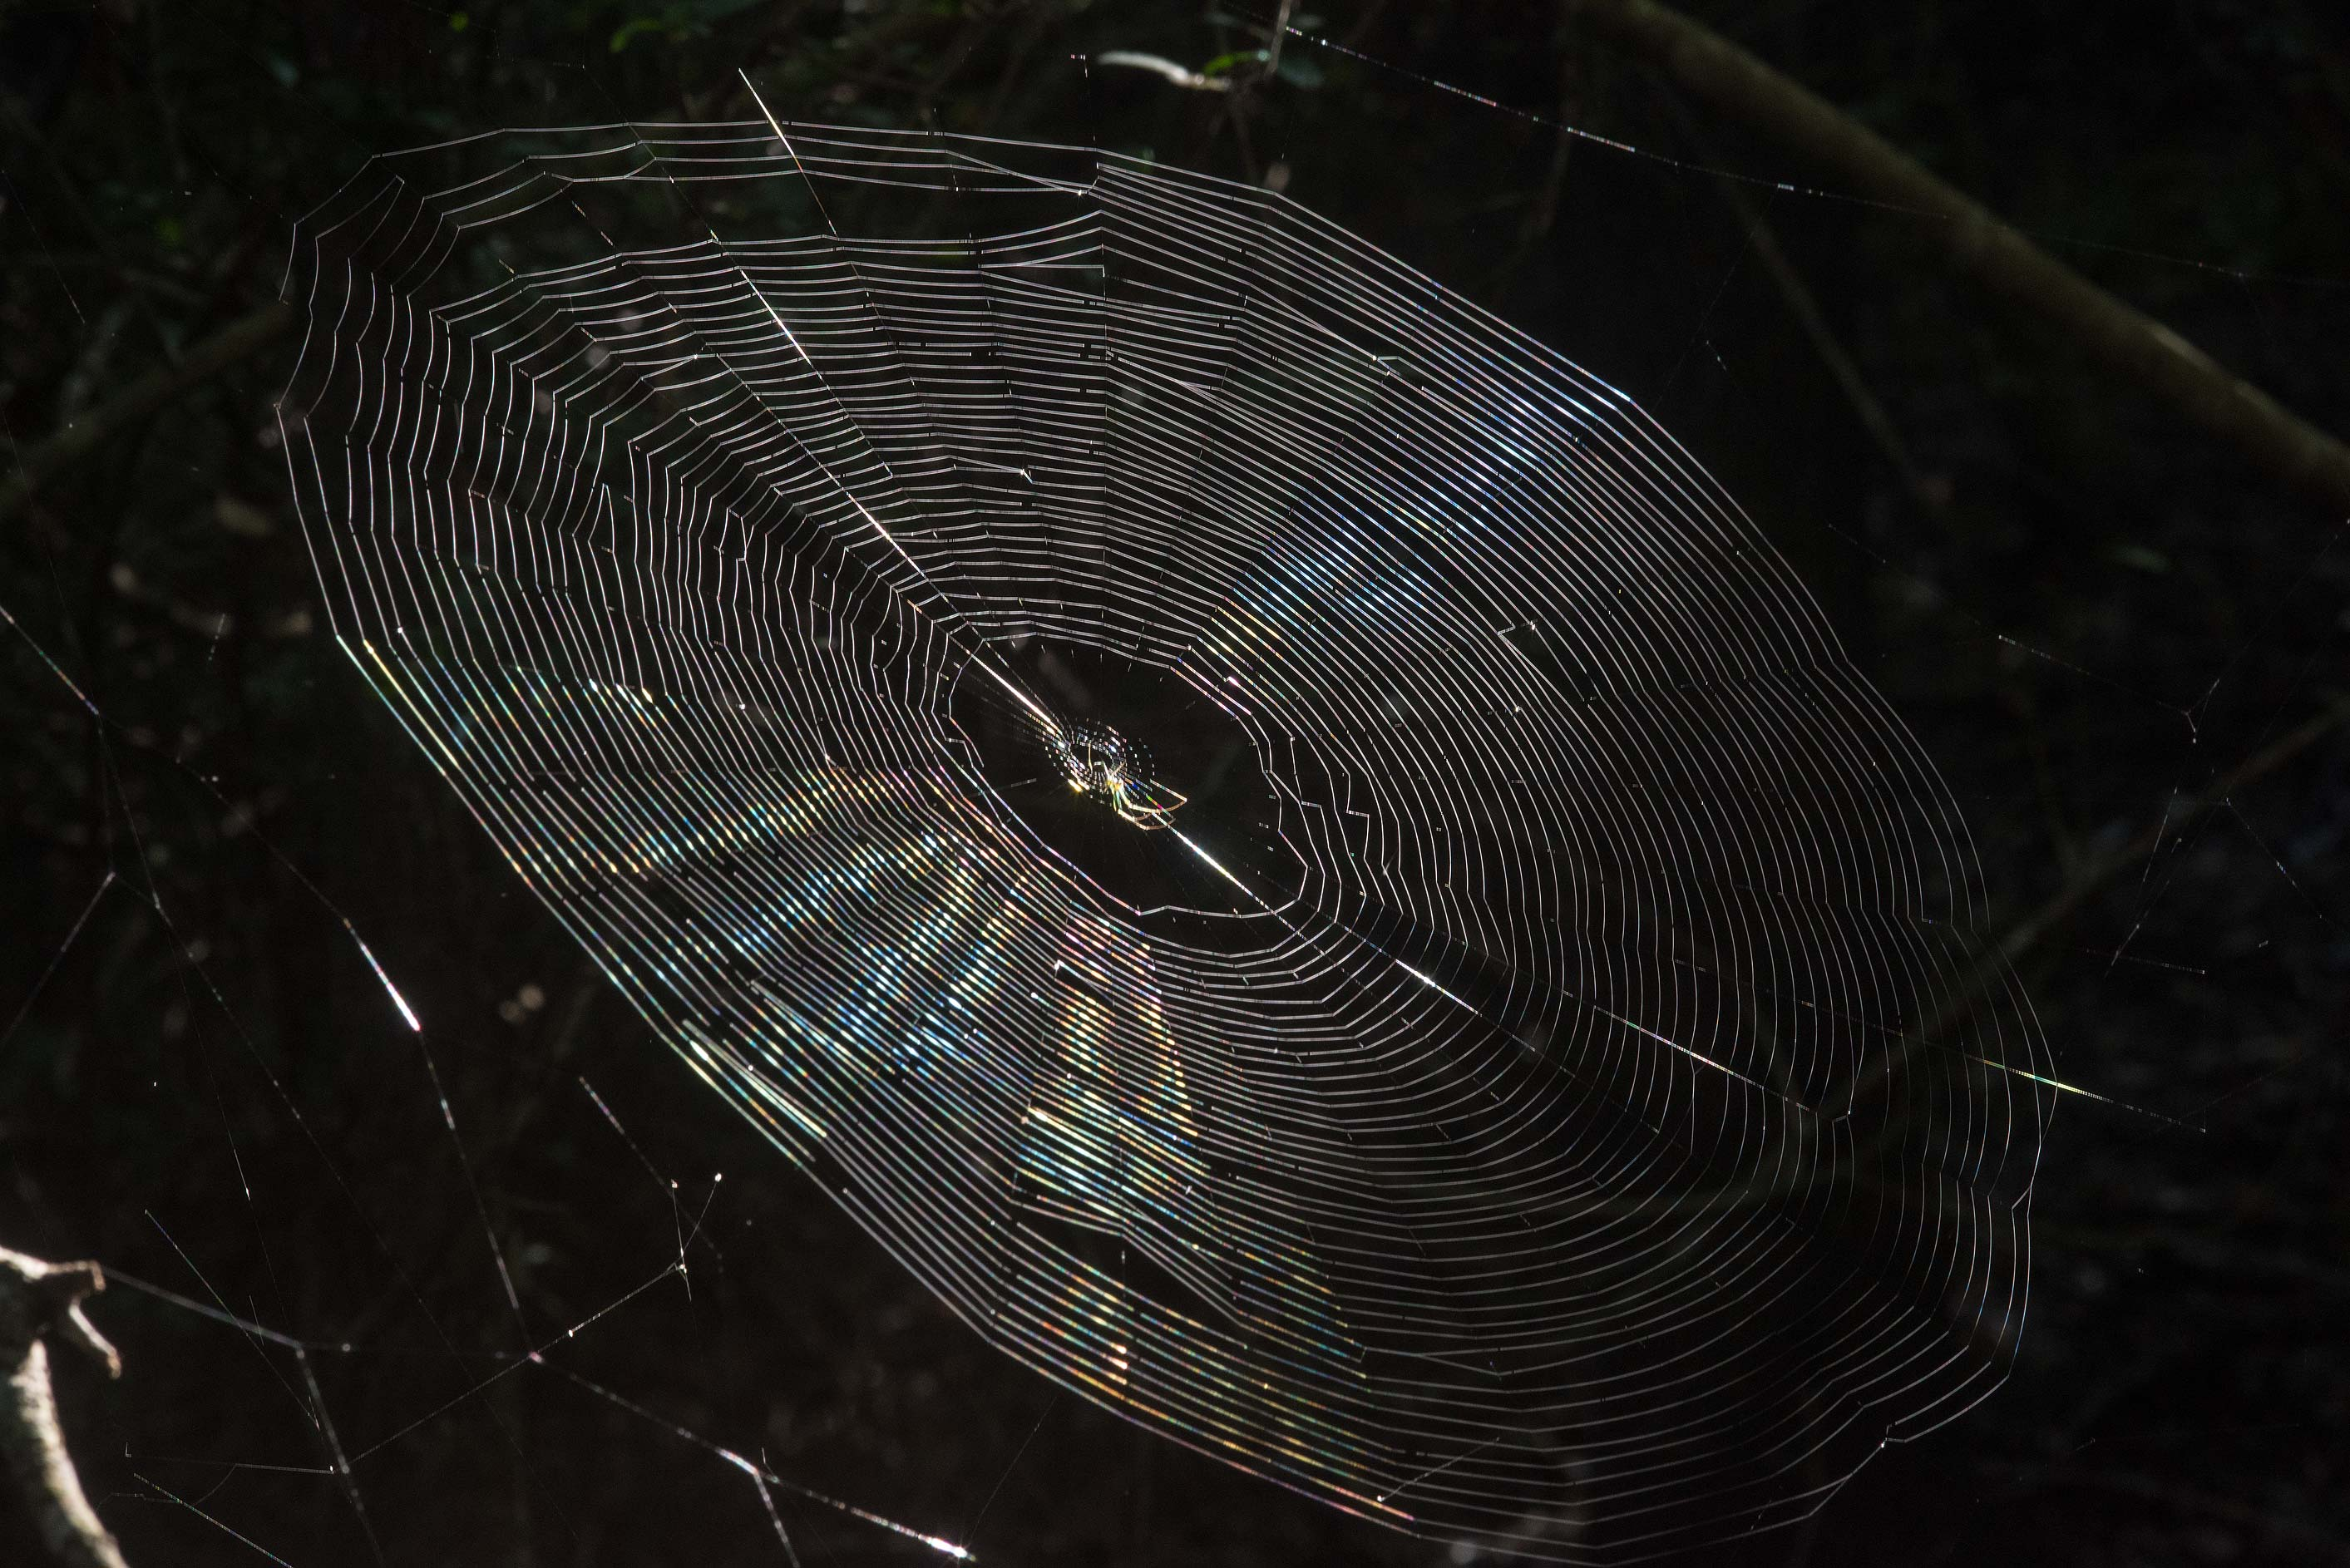 Spider's web lit by sun in Lick Creek Park. College Station, Texas